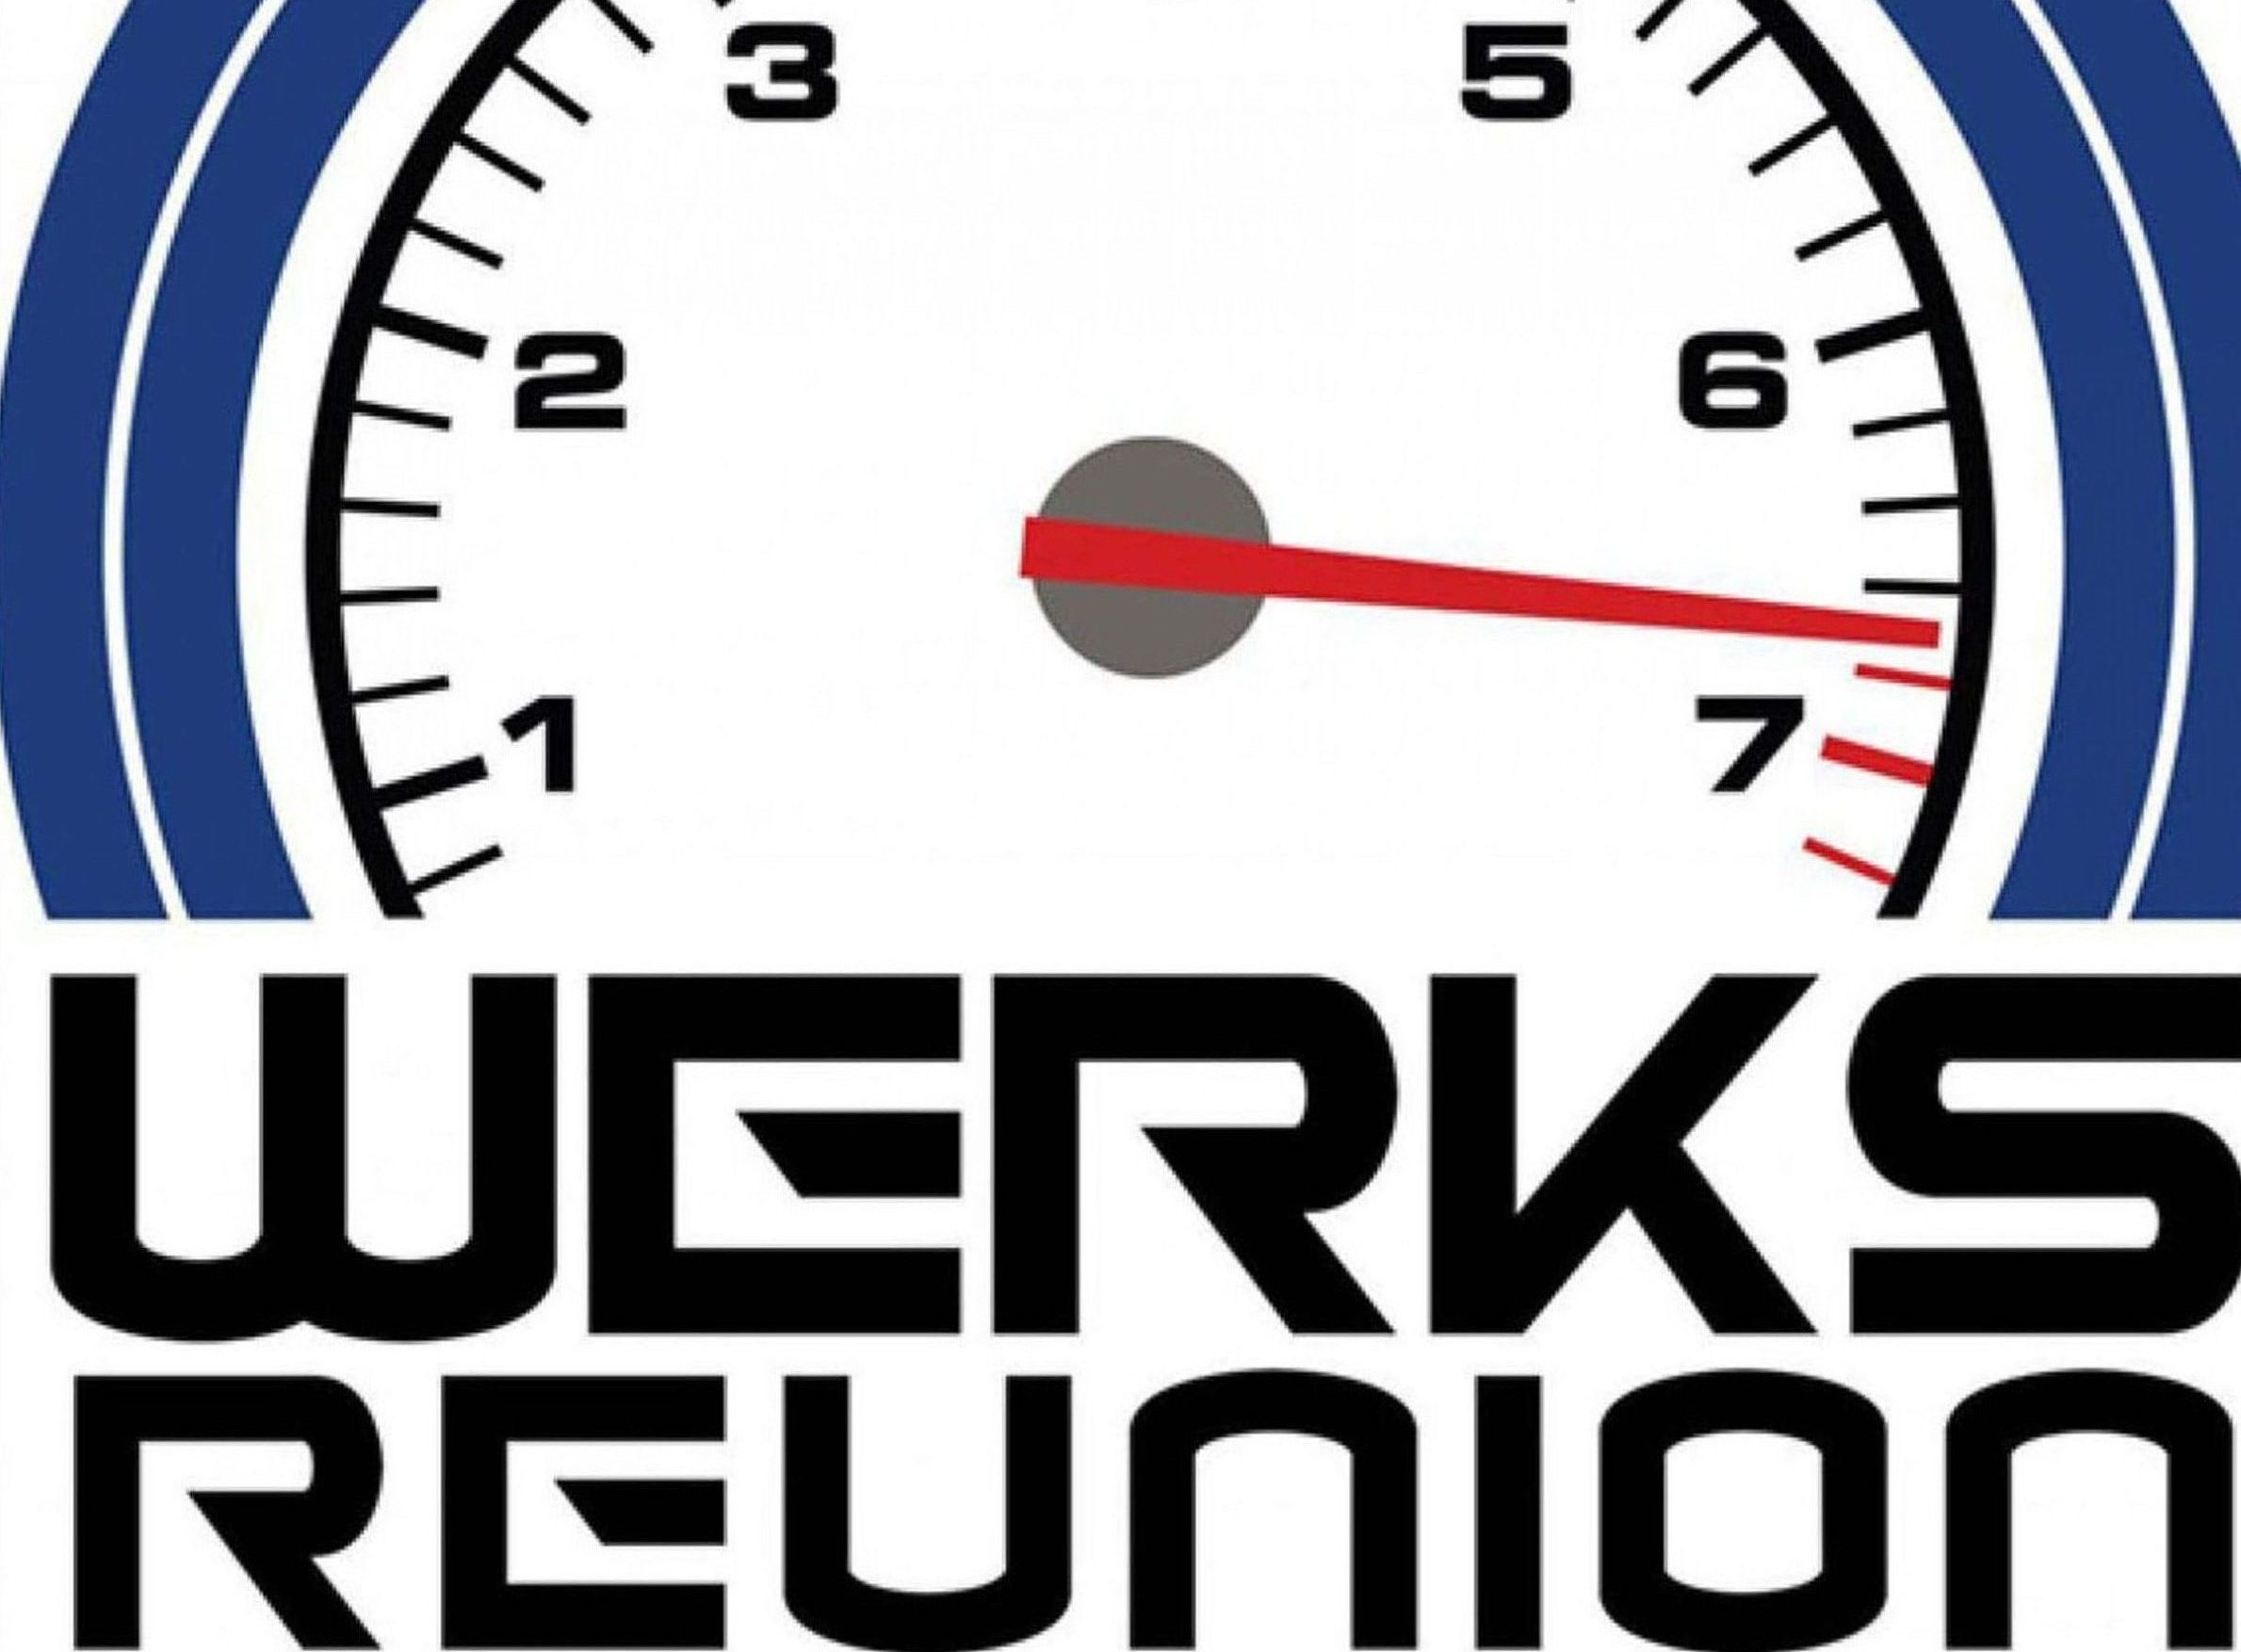 Werks Reunion Amelia Island postponed to May 21, 2021 - Registration Opens March 24, 2021